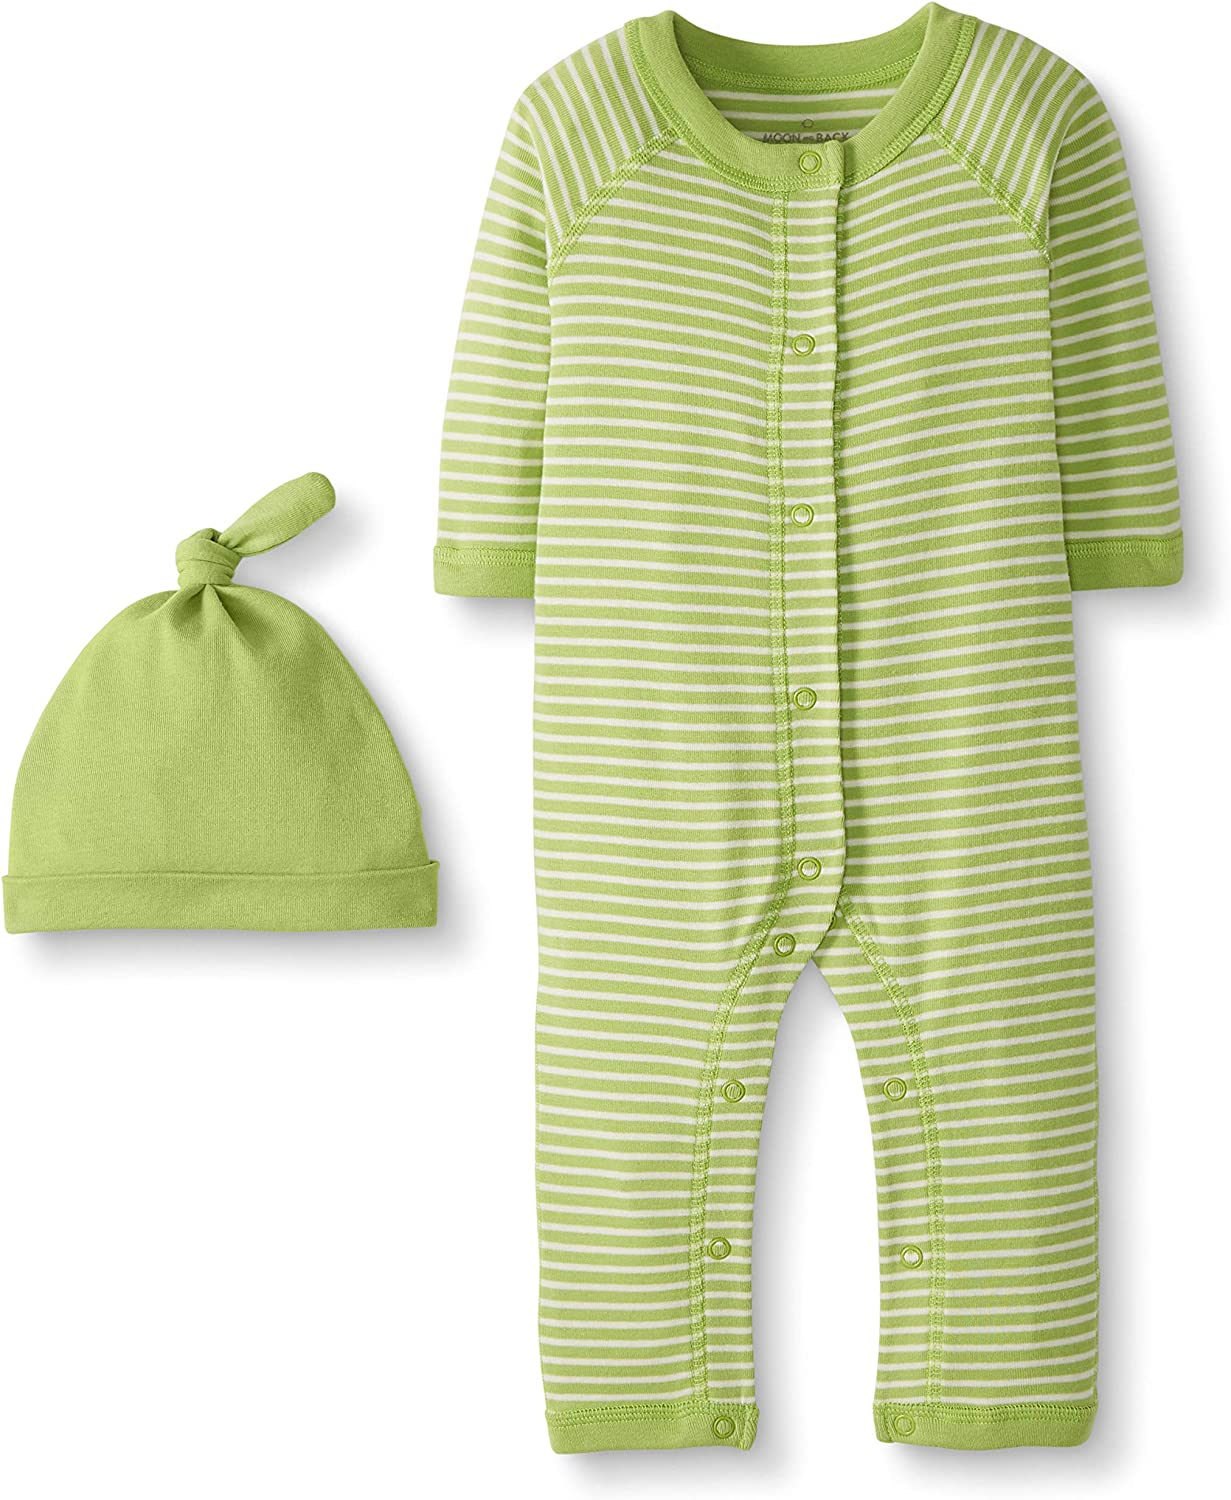 Moon and Back by Hanna Andersson Unisex Baby Snap Front One Piece Coverall with Cap Set